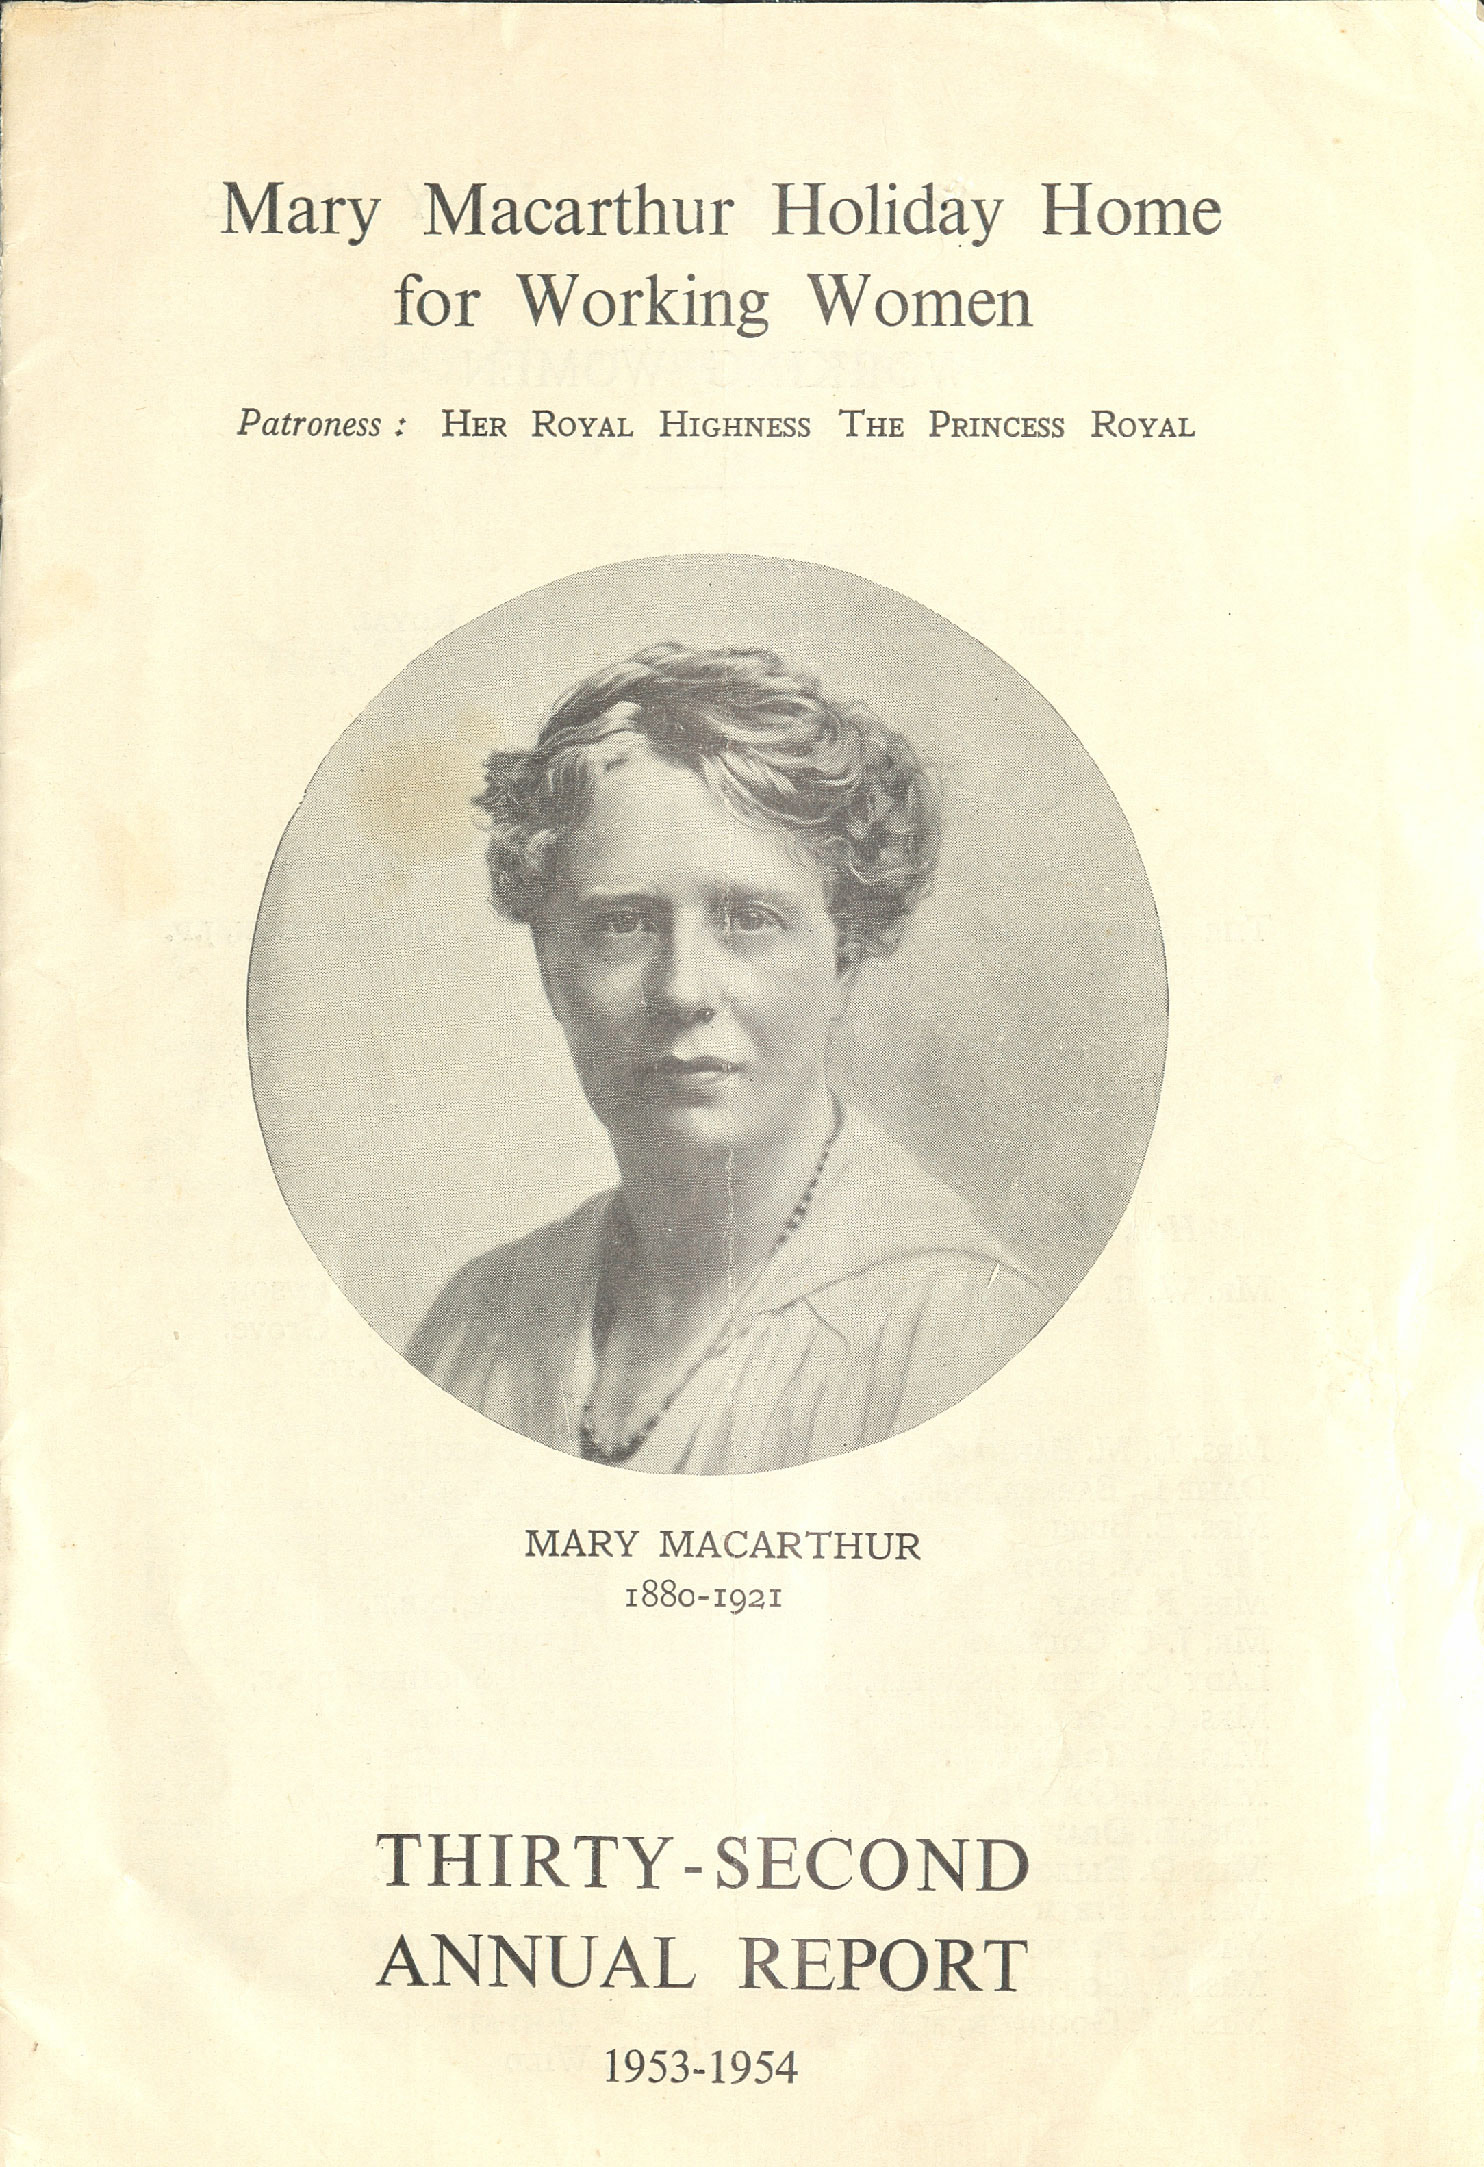 Image Credit: TUC Library, part of the Special Collections at London Metropolitan University.